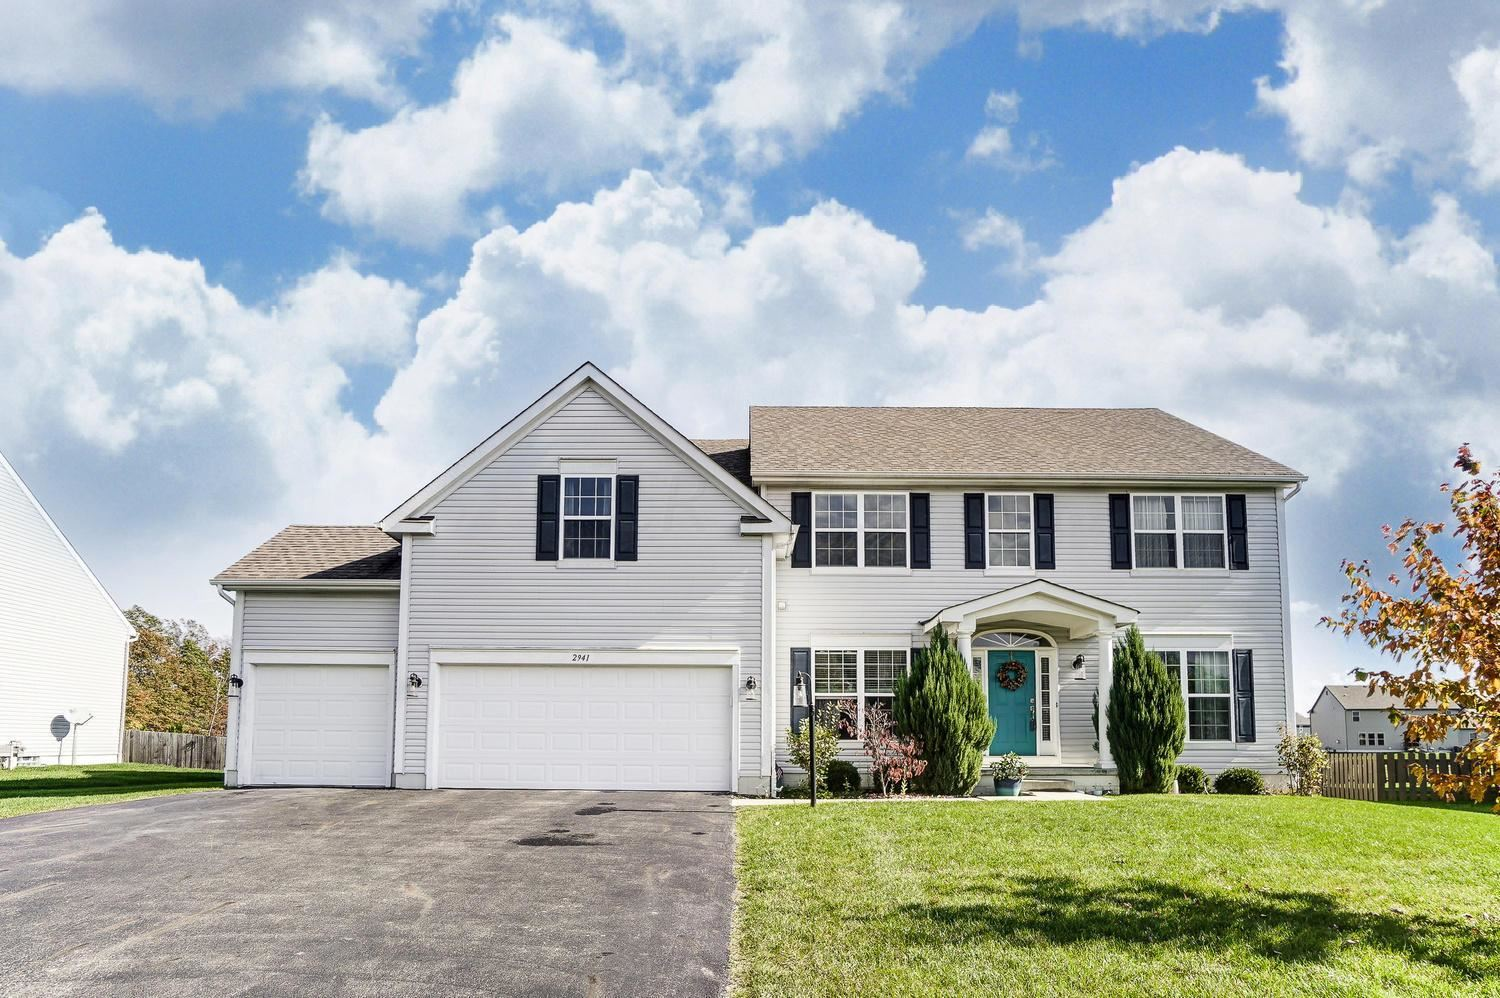 Photo of 2941 Indian Summer Drive, Galena, OH 43021 (MLS # 220038263)